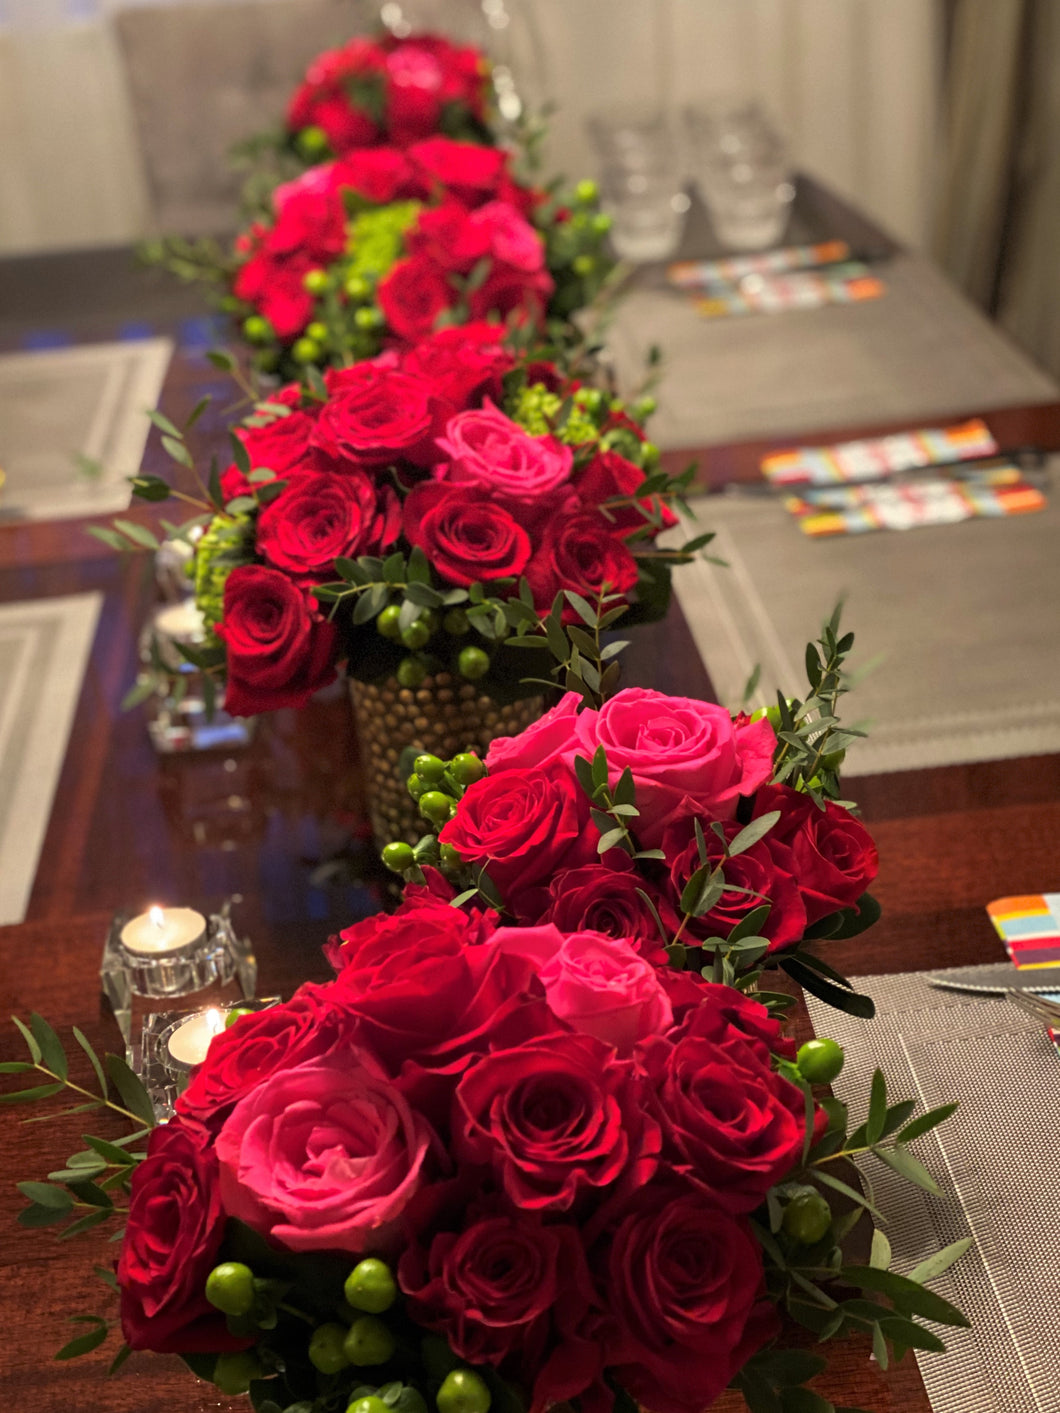 E23 - Hot Pink and Red Roses Centerpieces - Series Design - Flowerplustoronto